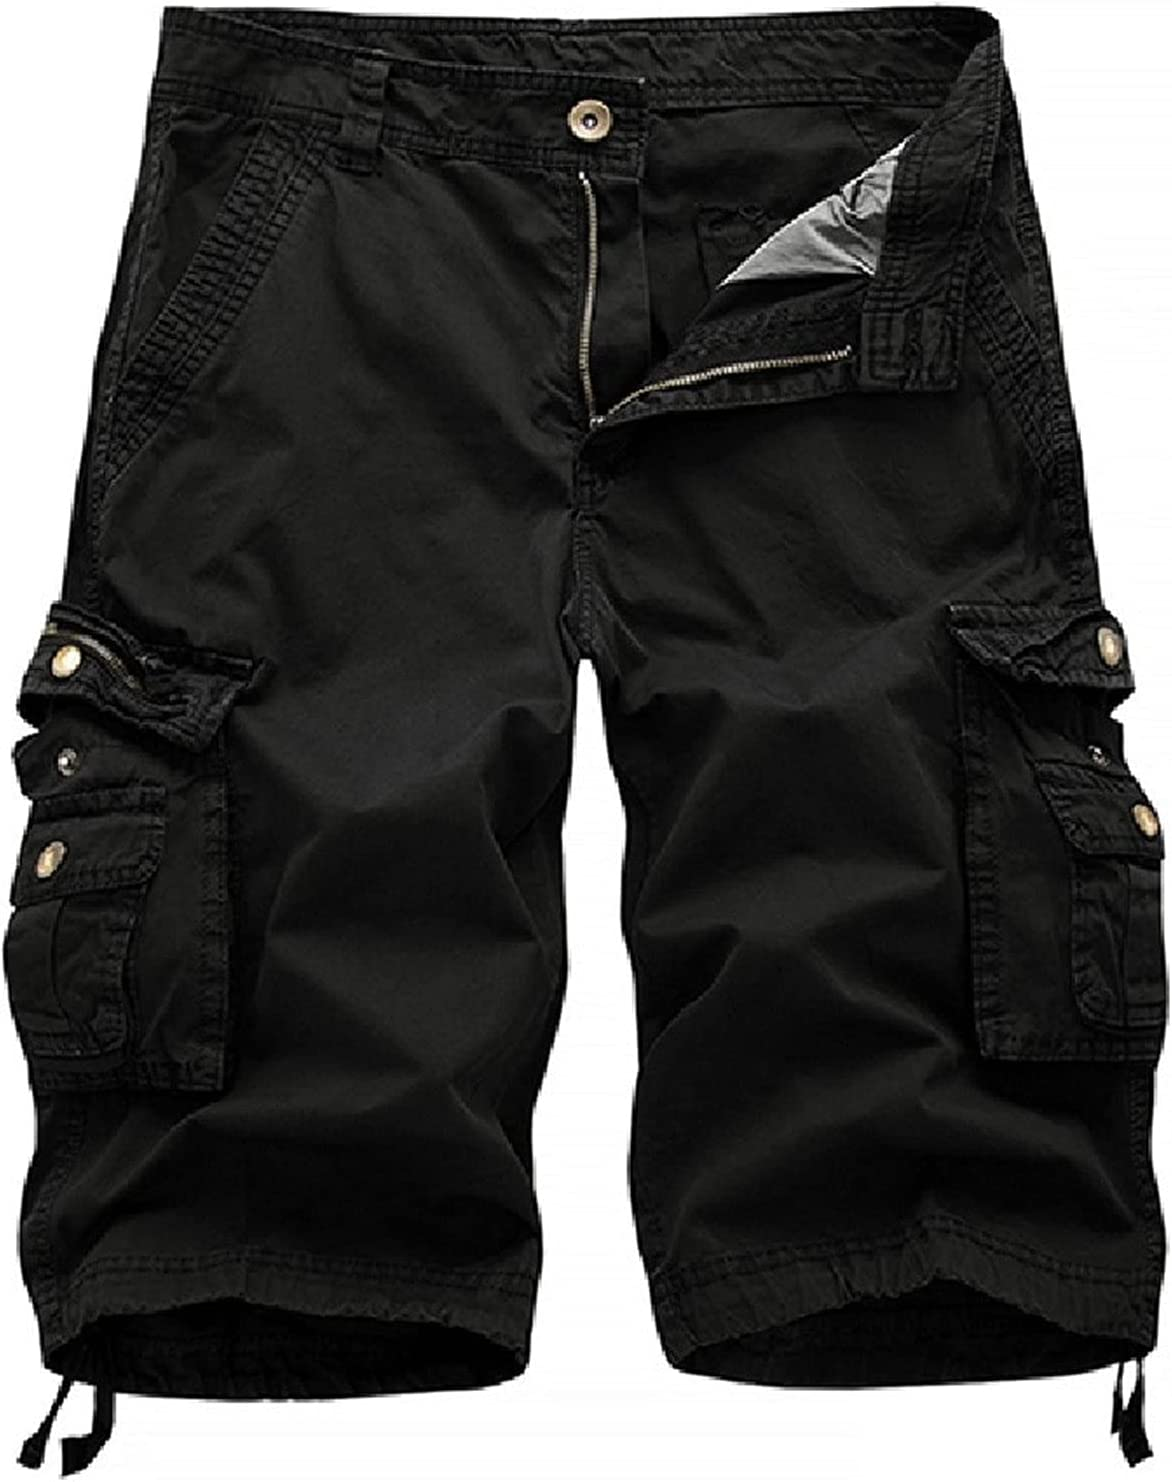 Outdoor Twill Cargo Shorts for Men Casual Summer Lightweight Outdoor Shorts Relaxed Fit Stretchy Multi-Pocket Shorts (Black,31)